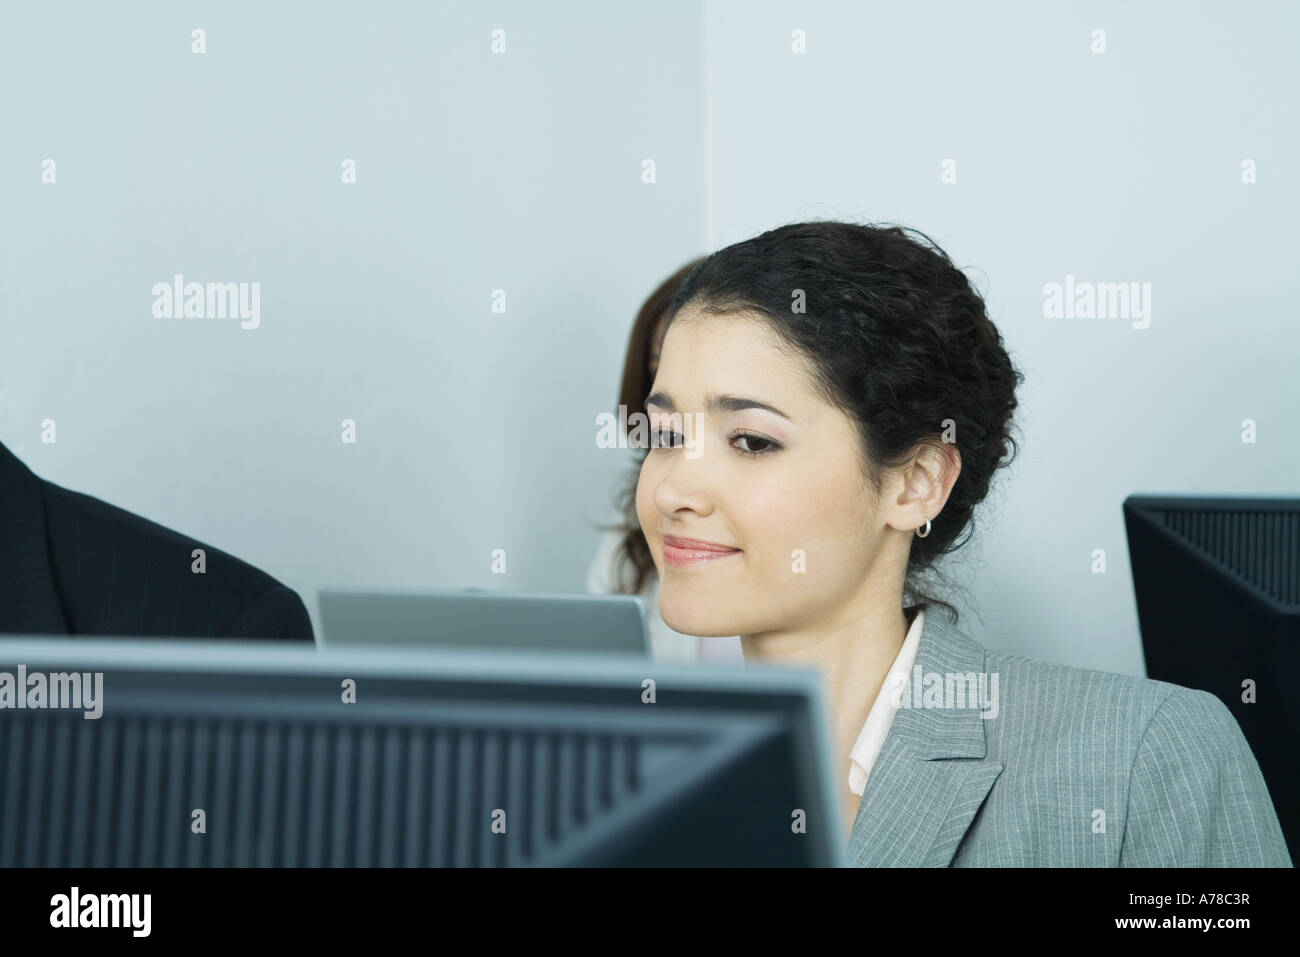 Businesswoman sitting at computer, smiling - Stock Image